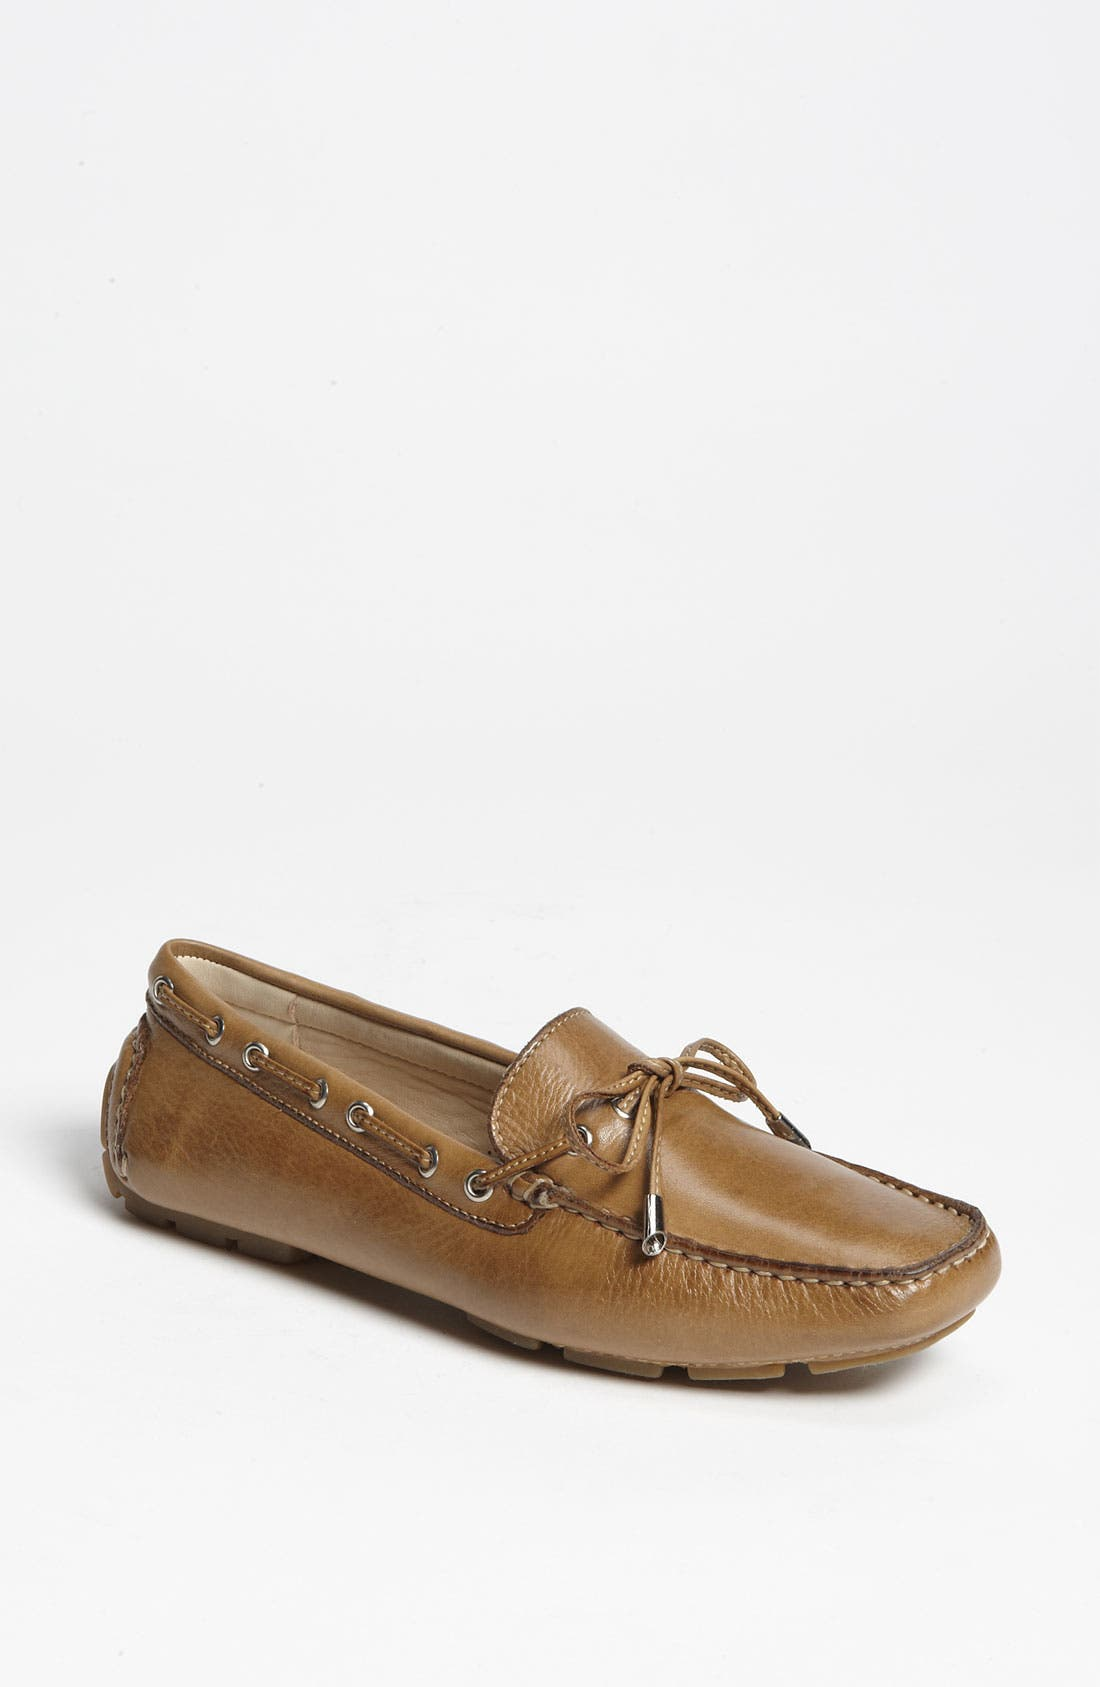 Alternate Image 1 Selected - Halogen® 'Prescott' Moccasin